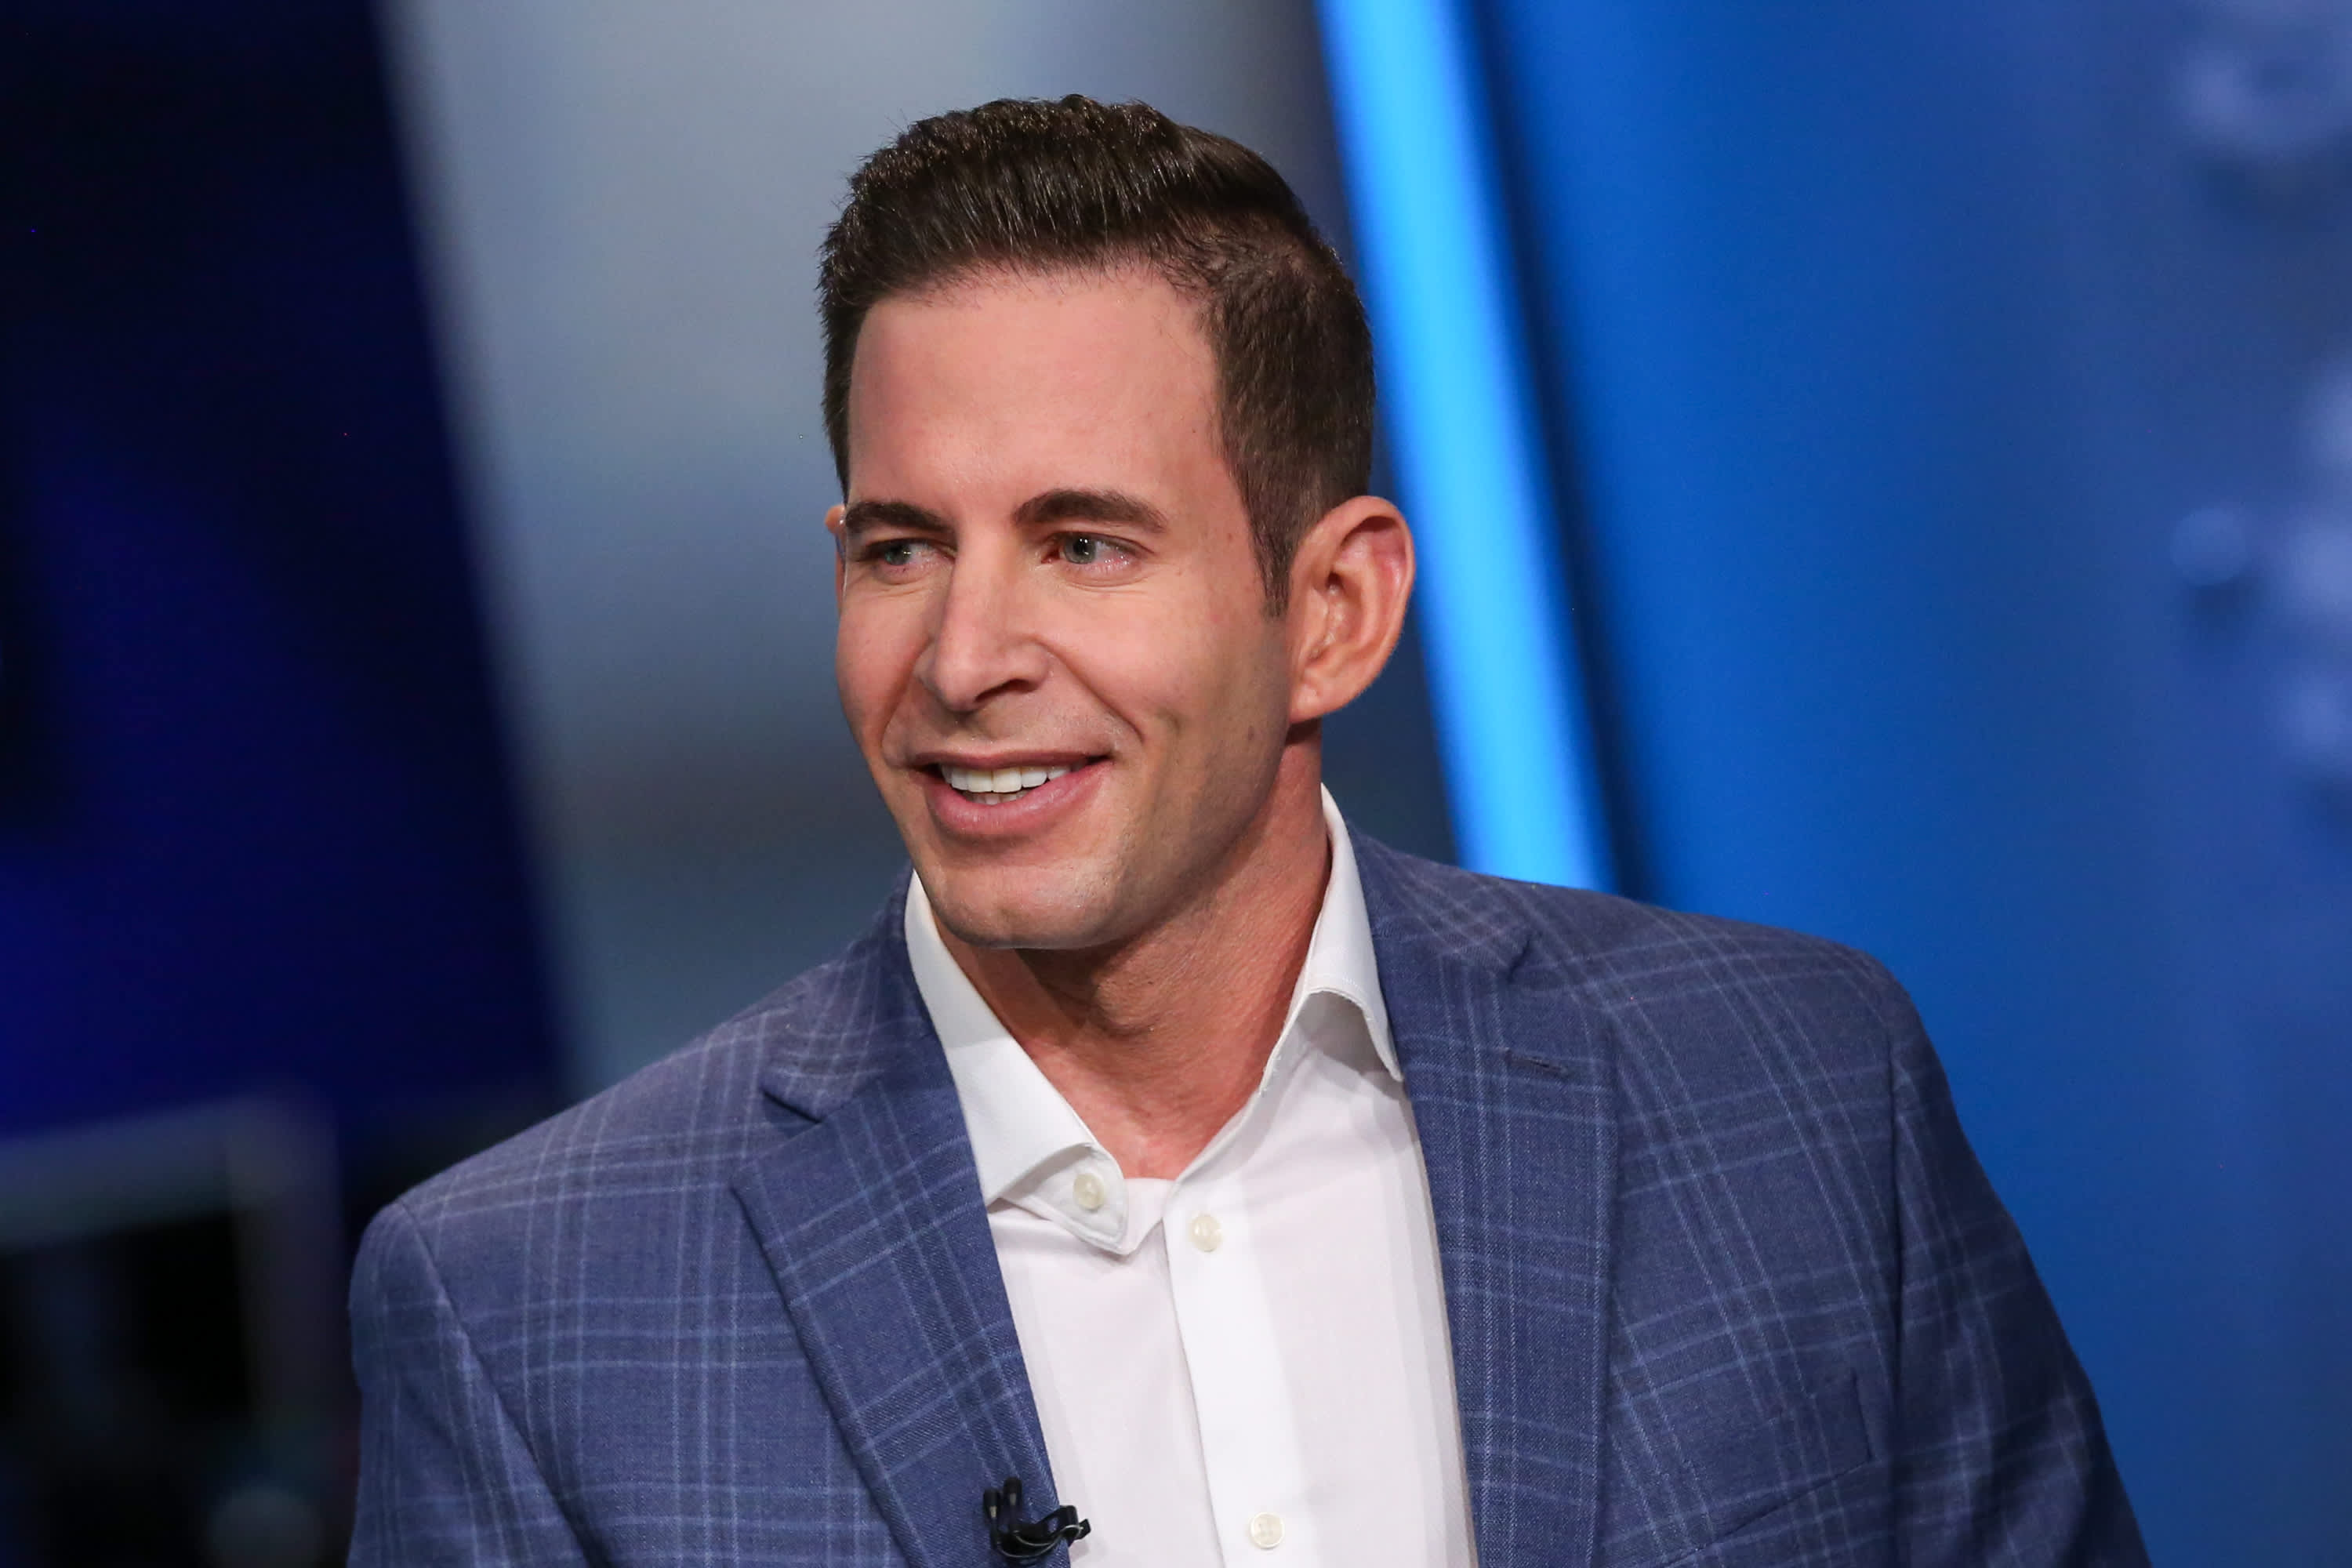 House-flipping tips from HGTV's real estate pro Tarek El Moussa